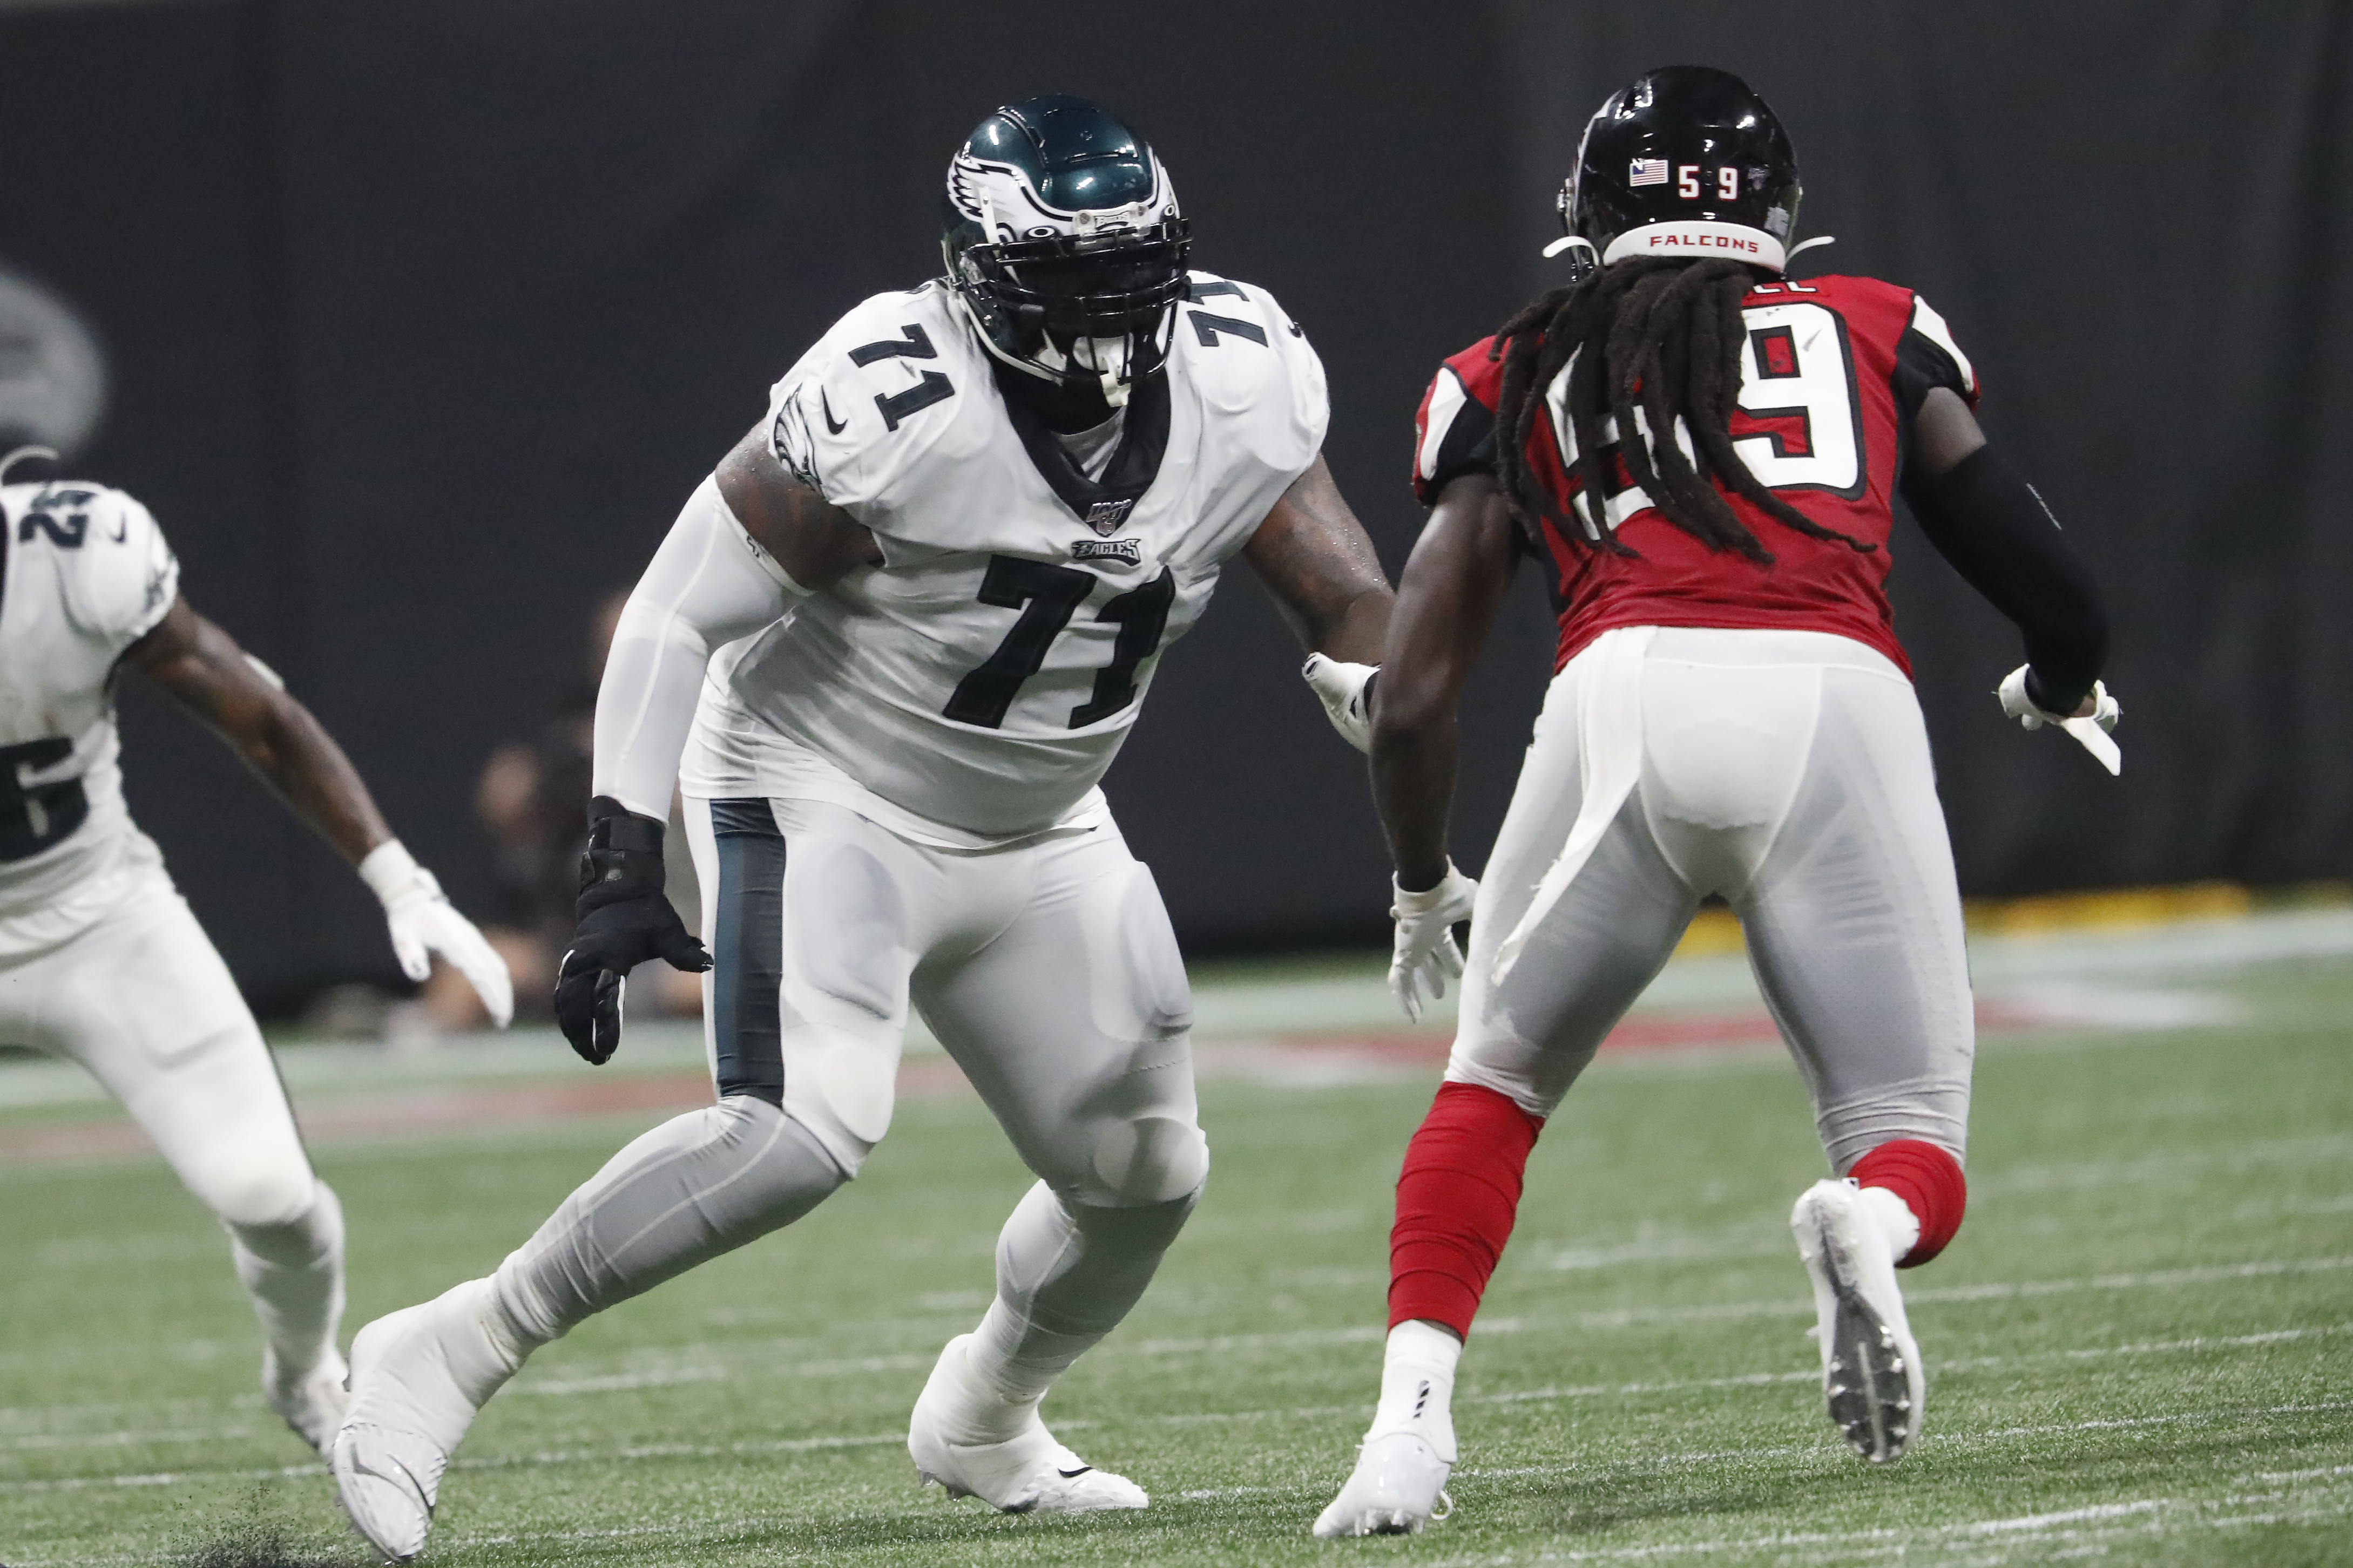 Eagles injury updates on Jason Peters, DeSean Jackson, Jalen Mills, others | At least 1 key player expected to miss Cowboys game